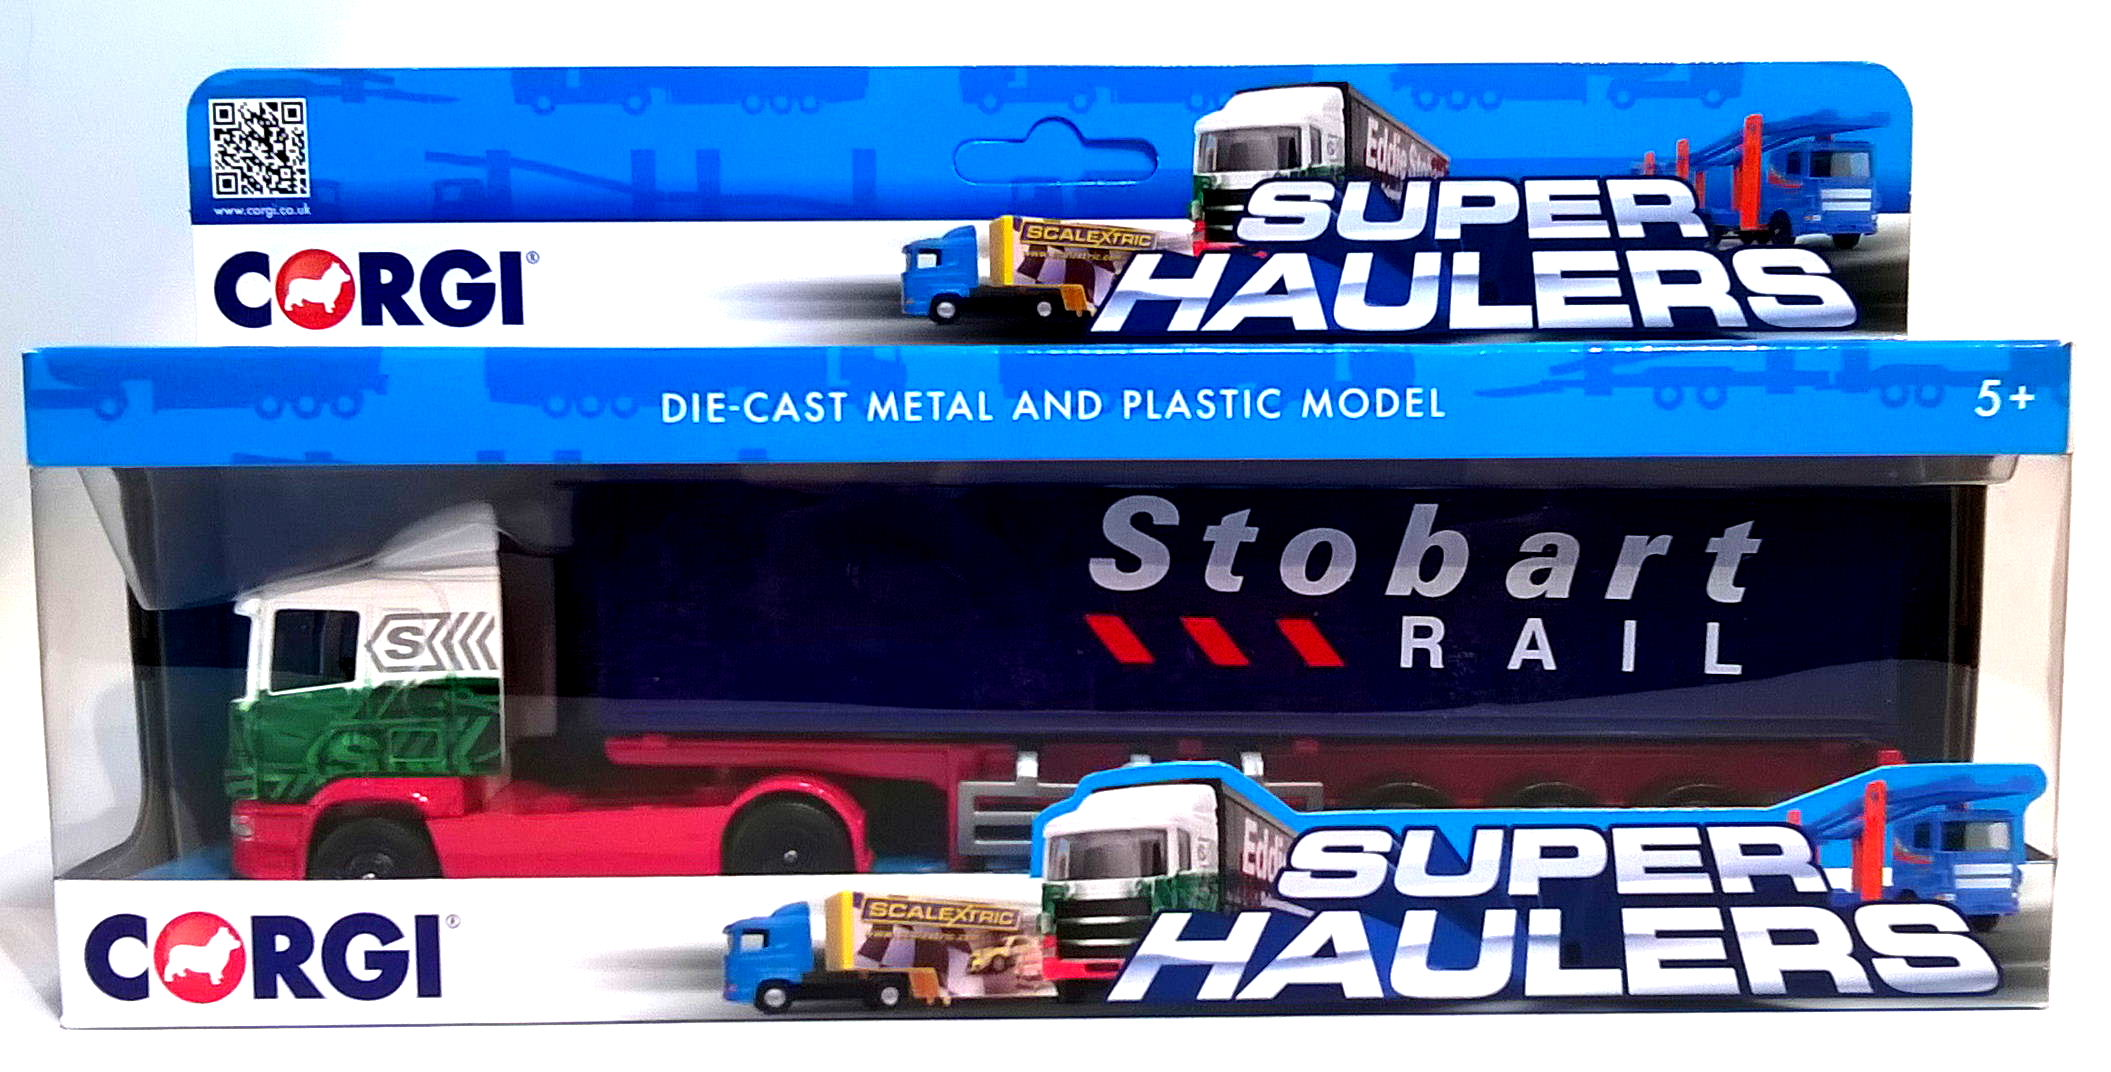 EDDIE STOBART SKELETAL RAIL TRAILER TRUCK - 1:64 Scale Die-Cast Lorry Model by Corgi